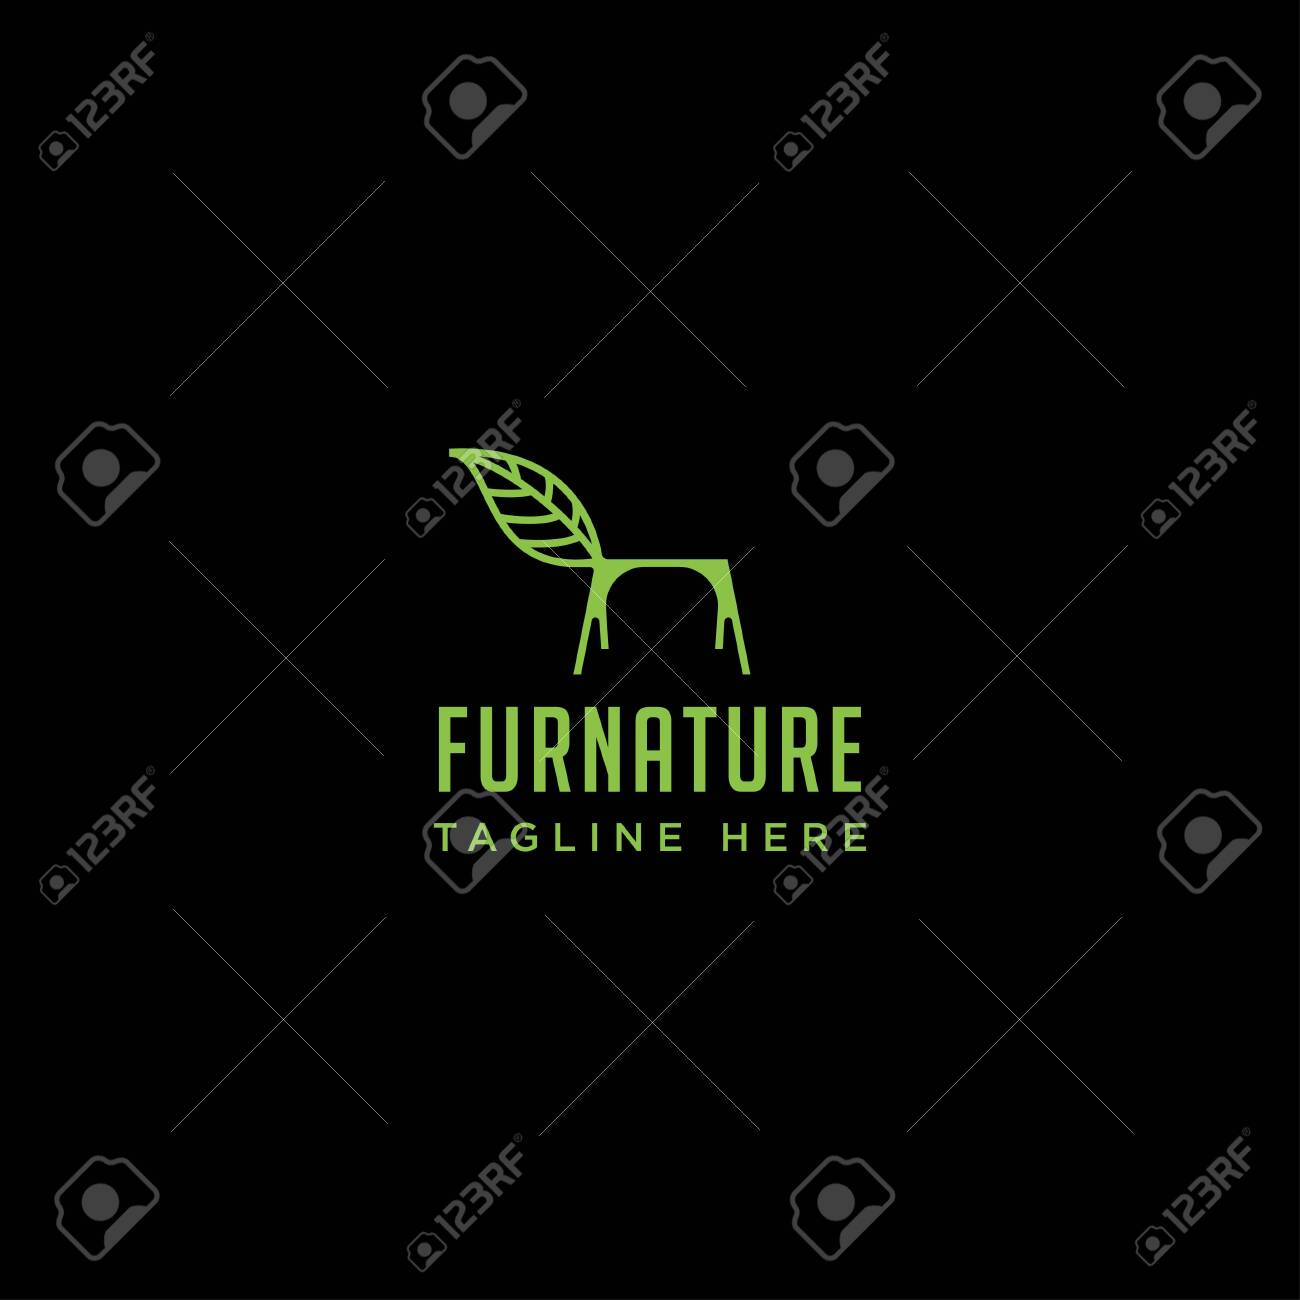 Chair Nature Logo Design With Green Color Vector Icon Element